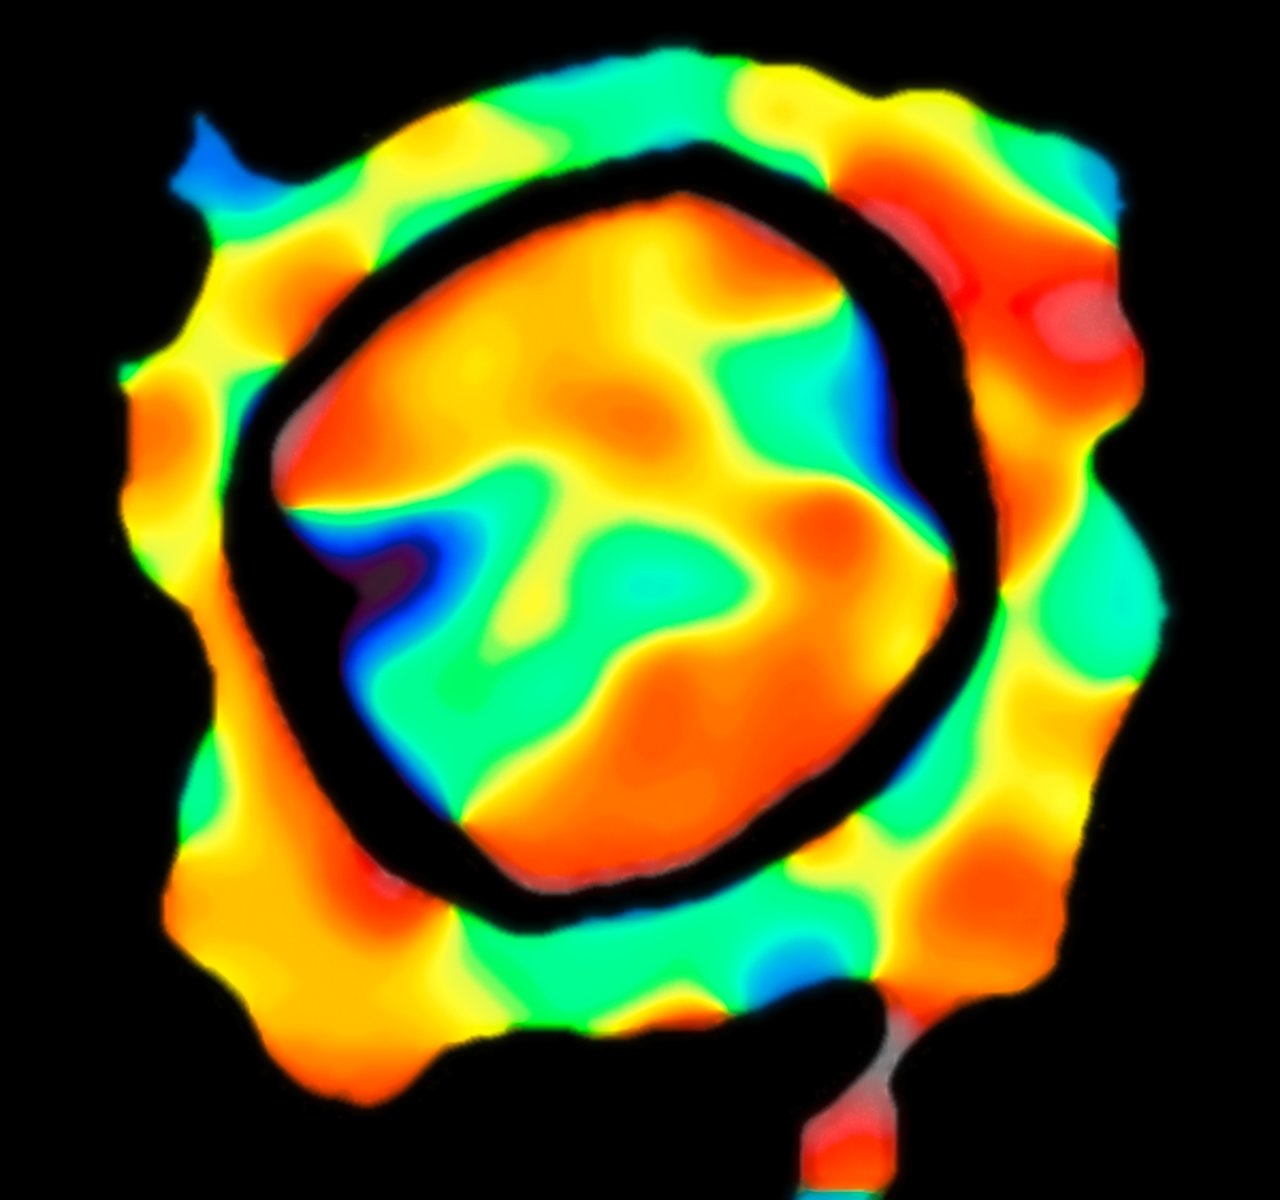 VLTI velocity map of the surface of Antares